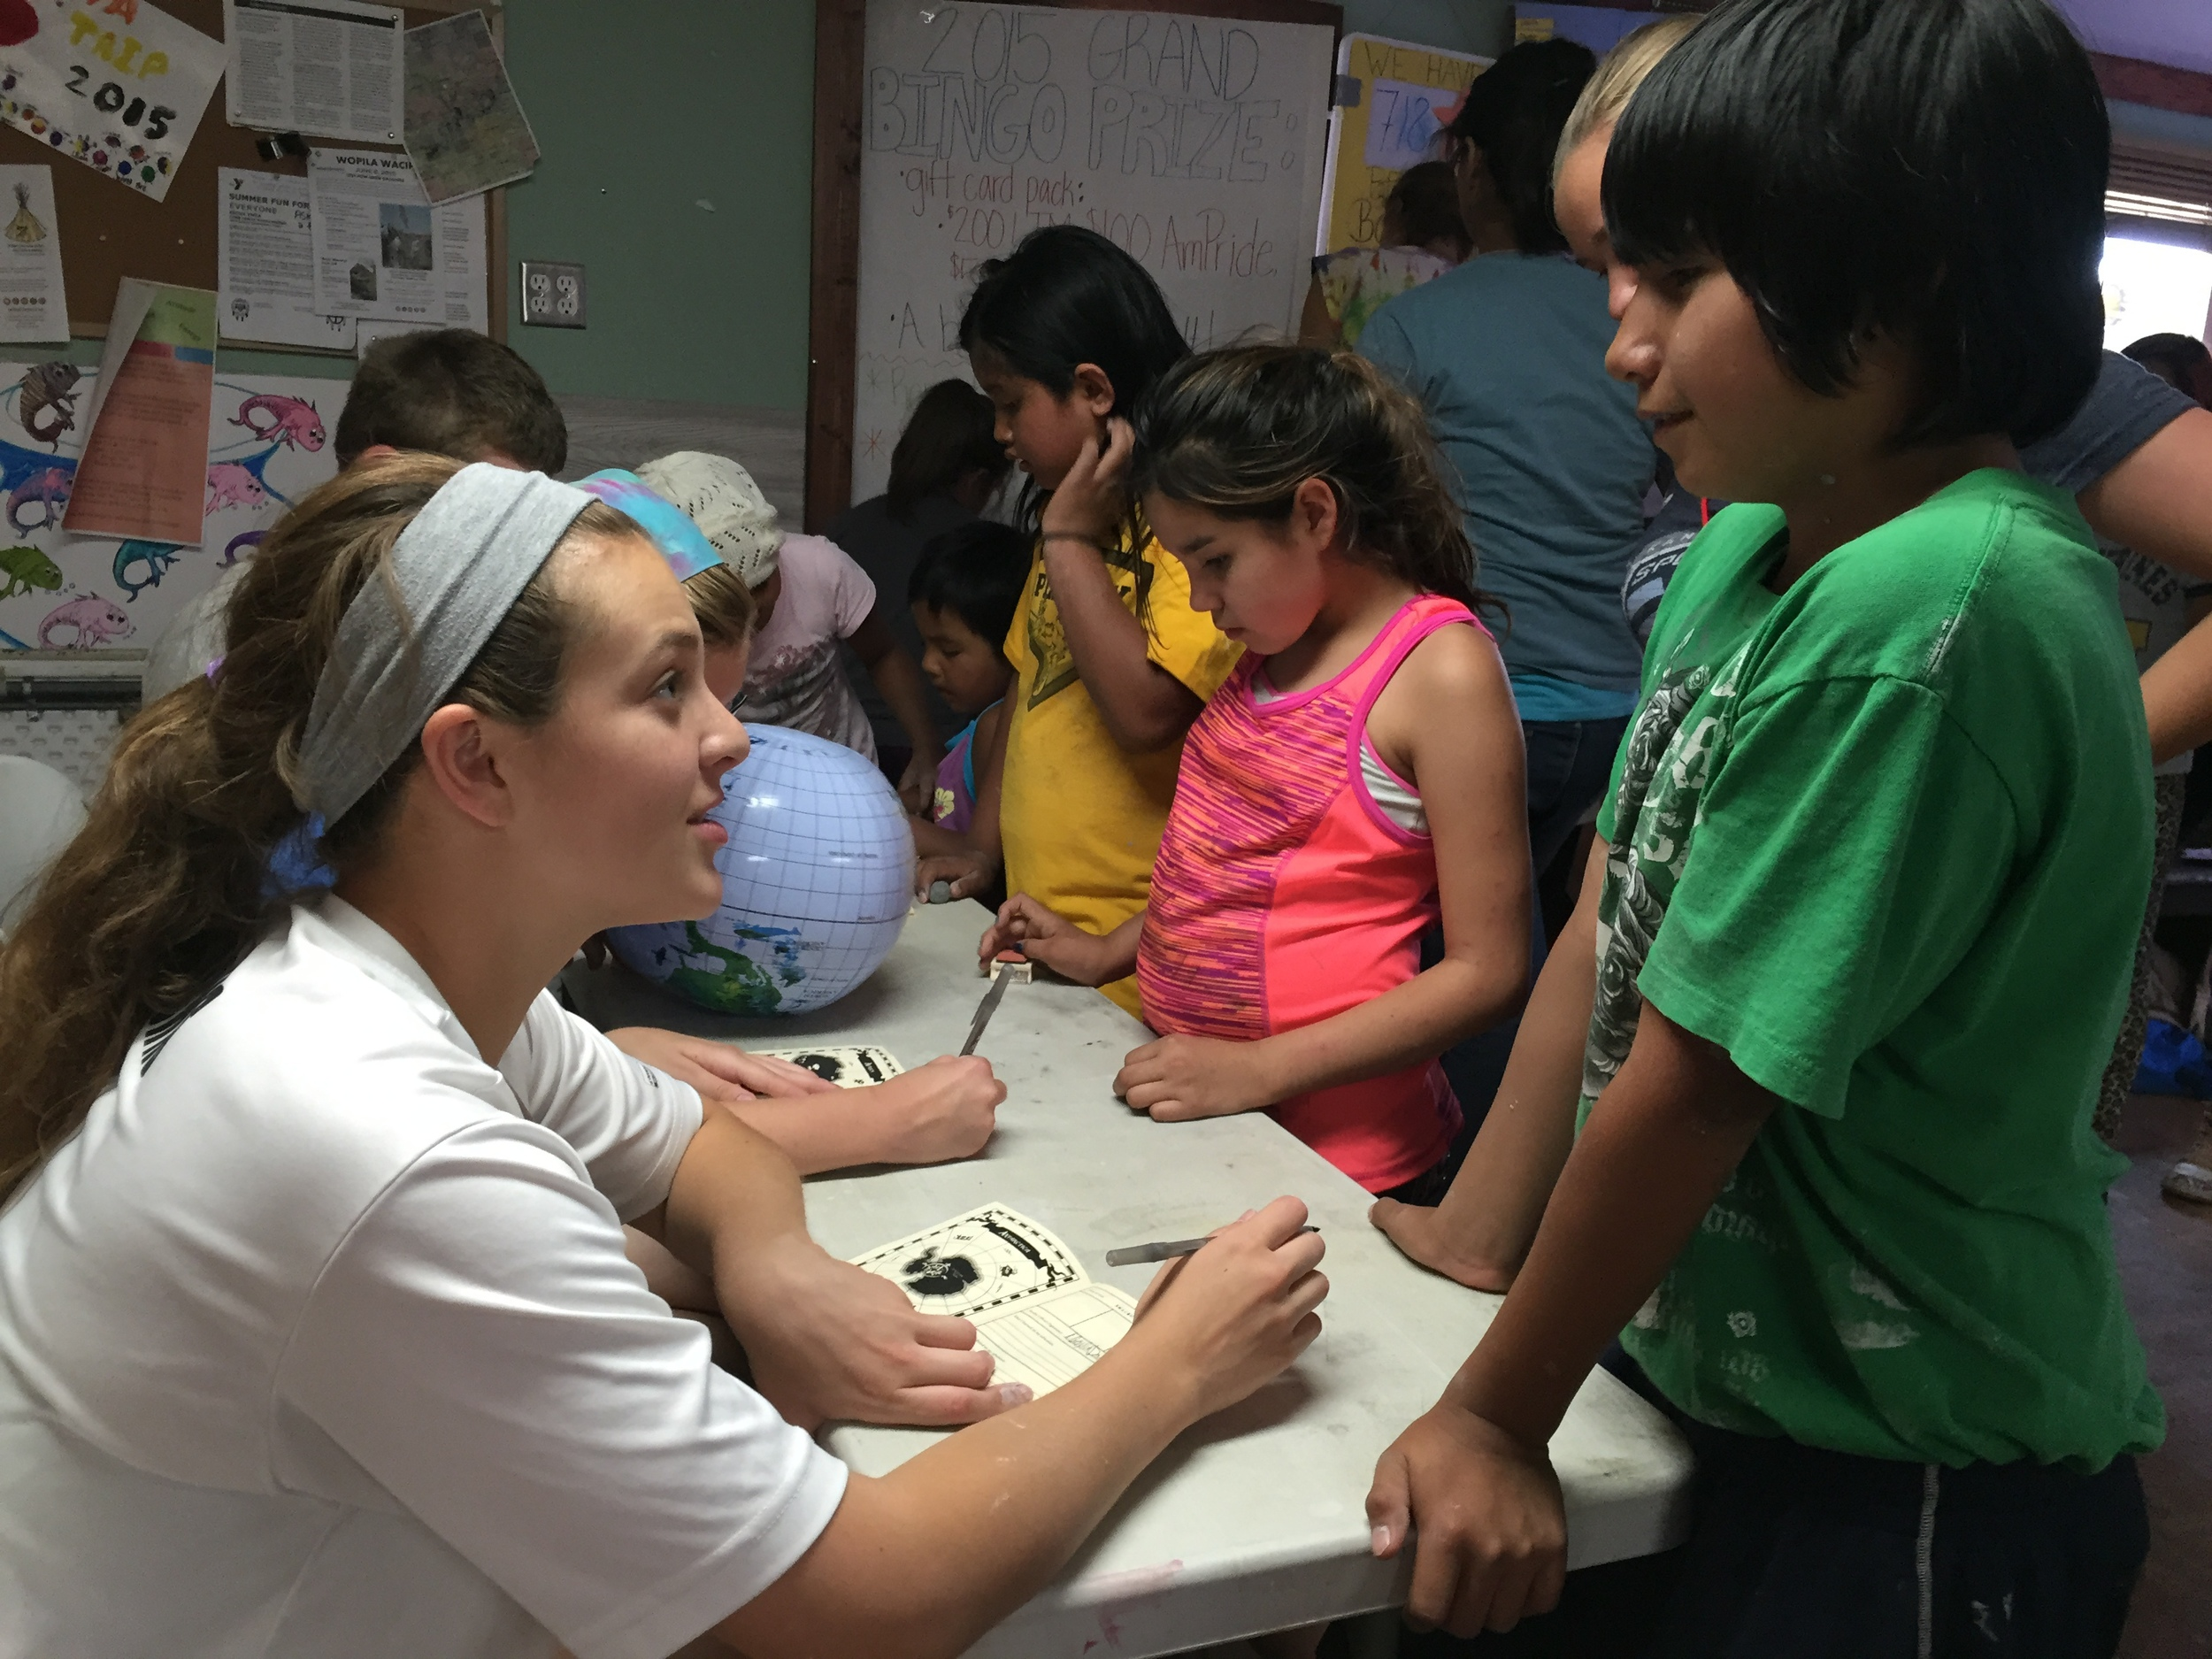 """As part of Plymouth's """"around the world"""" theme for camp this week, the kids received passports that will be stamped each day as they experience different continents through various crafts and games. (Z.Gross, June 2015)"""